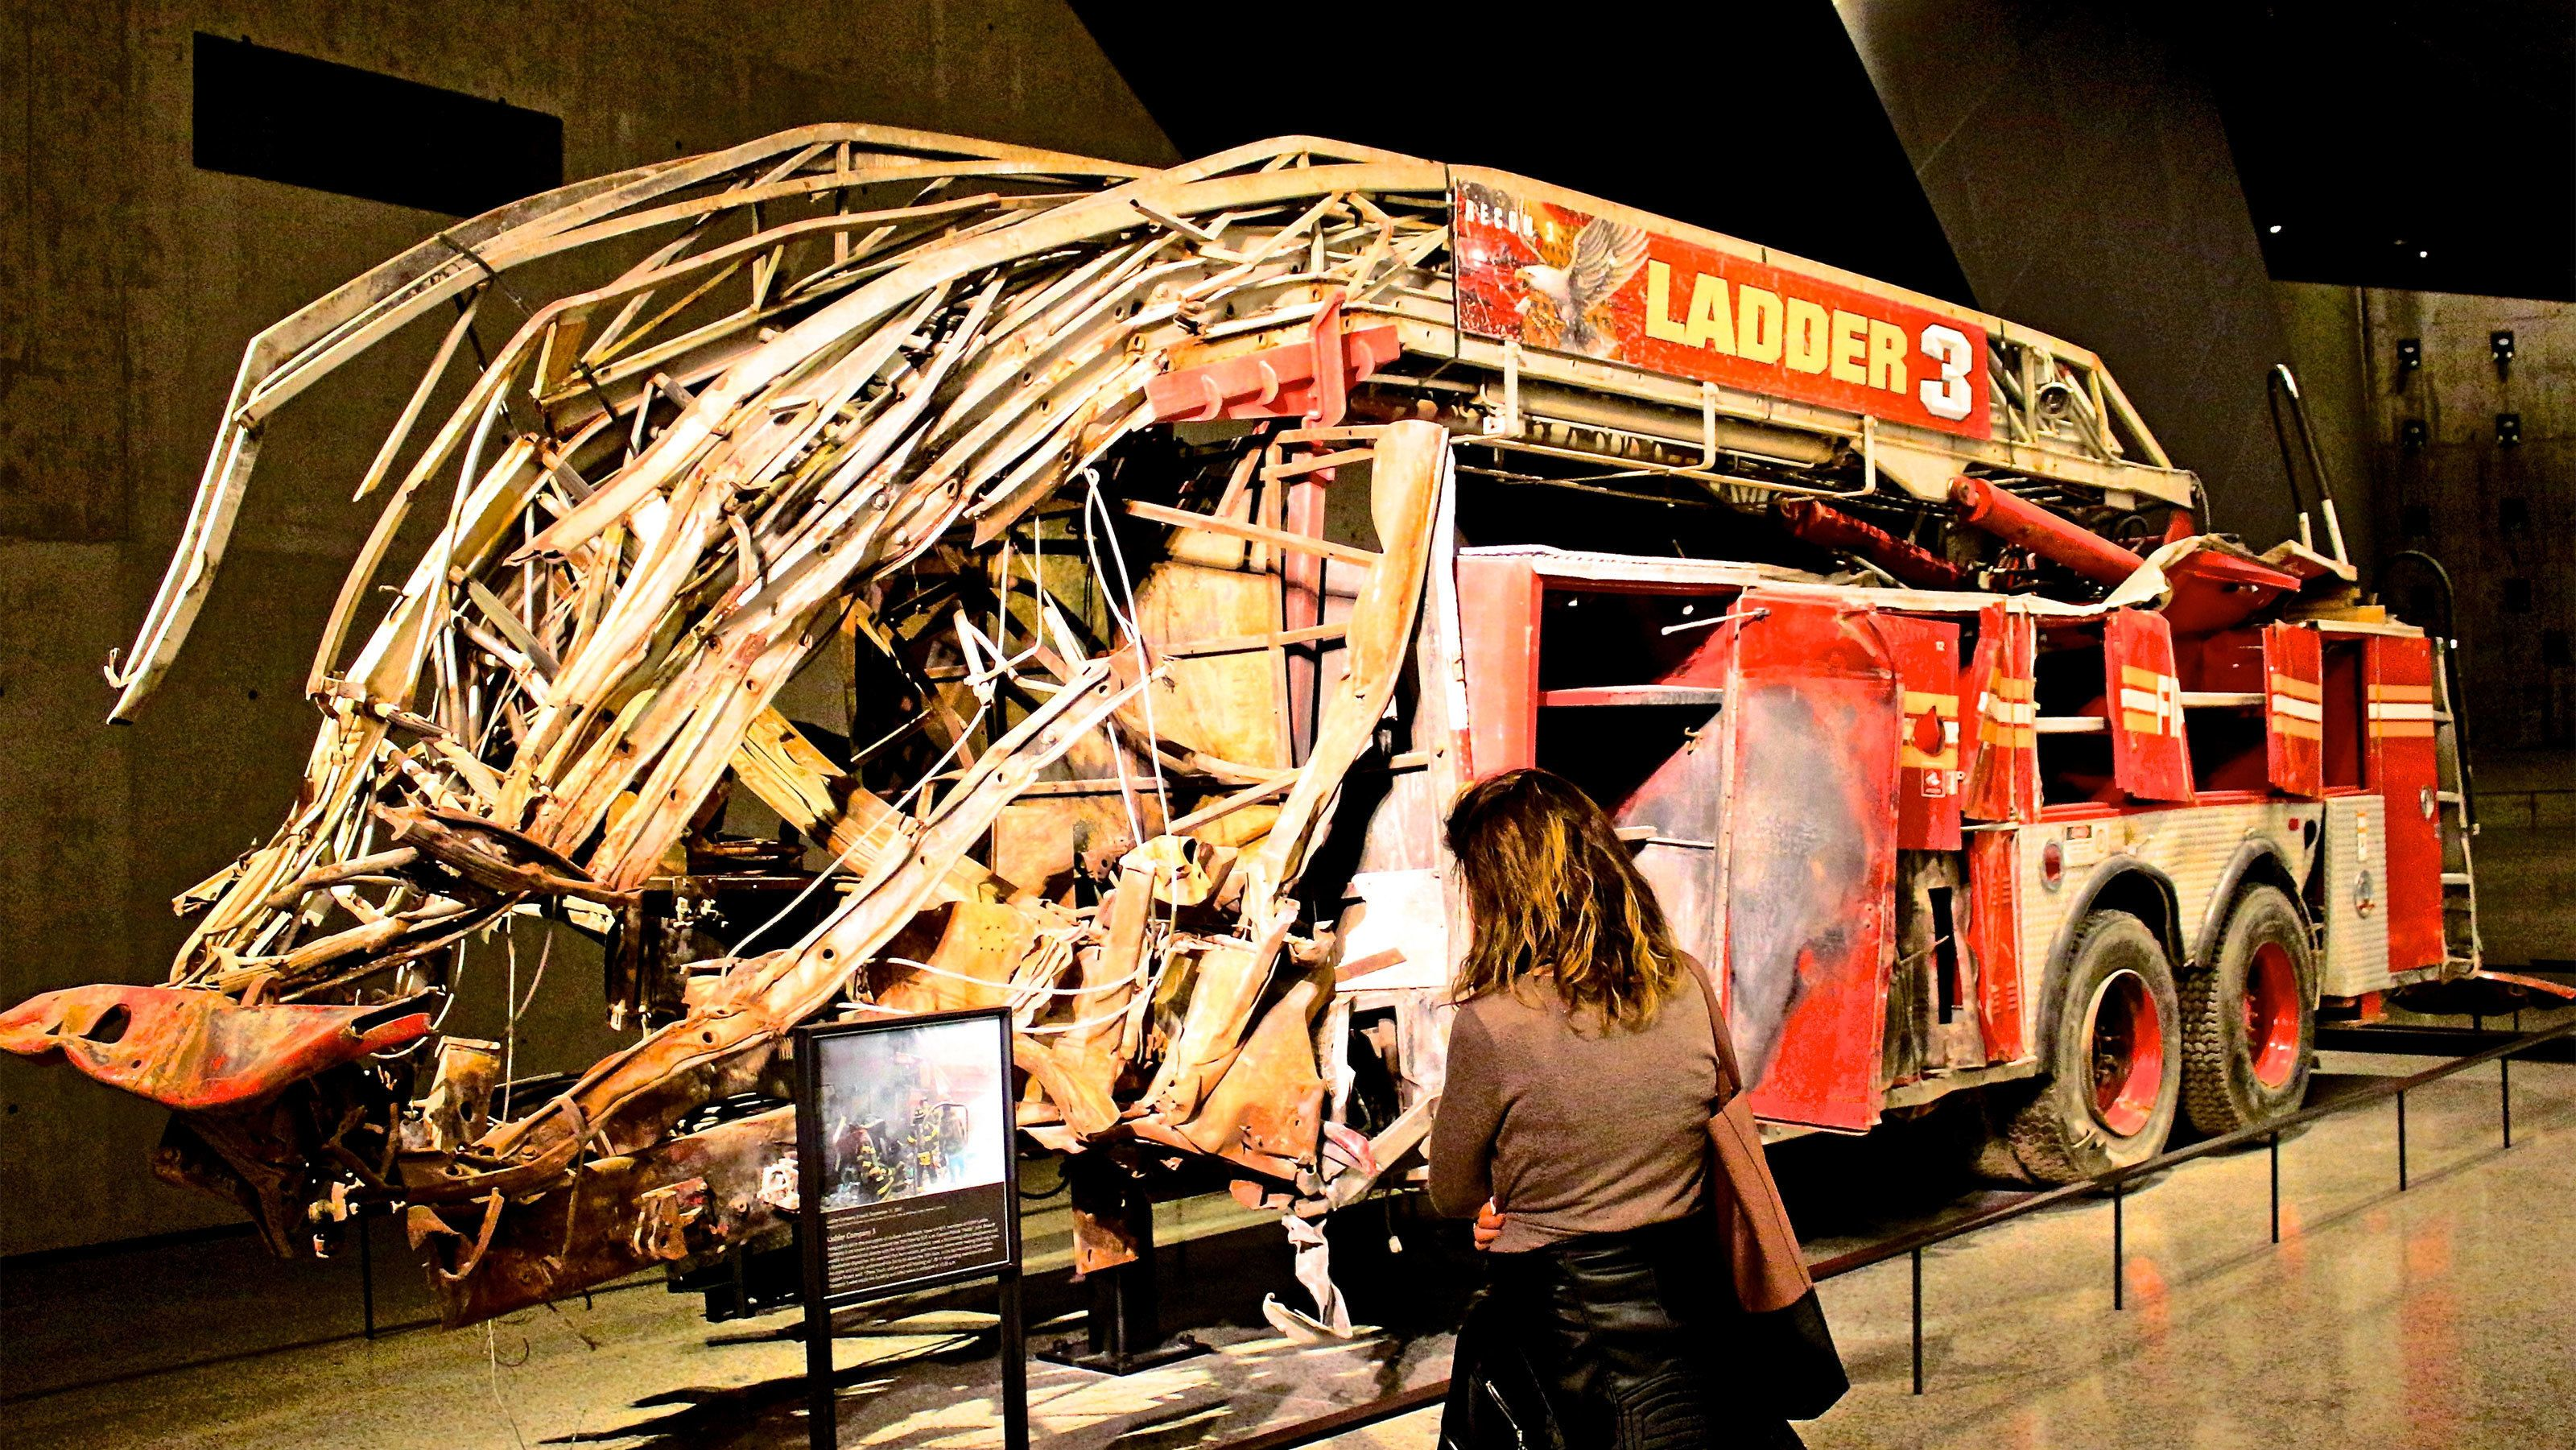 Demolished firetruck at the National September 11 Memorial and Museum in New York